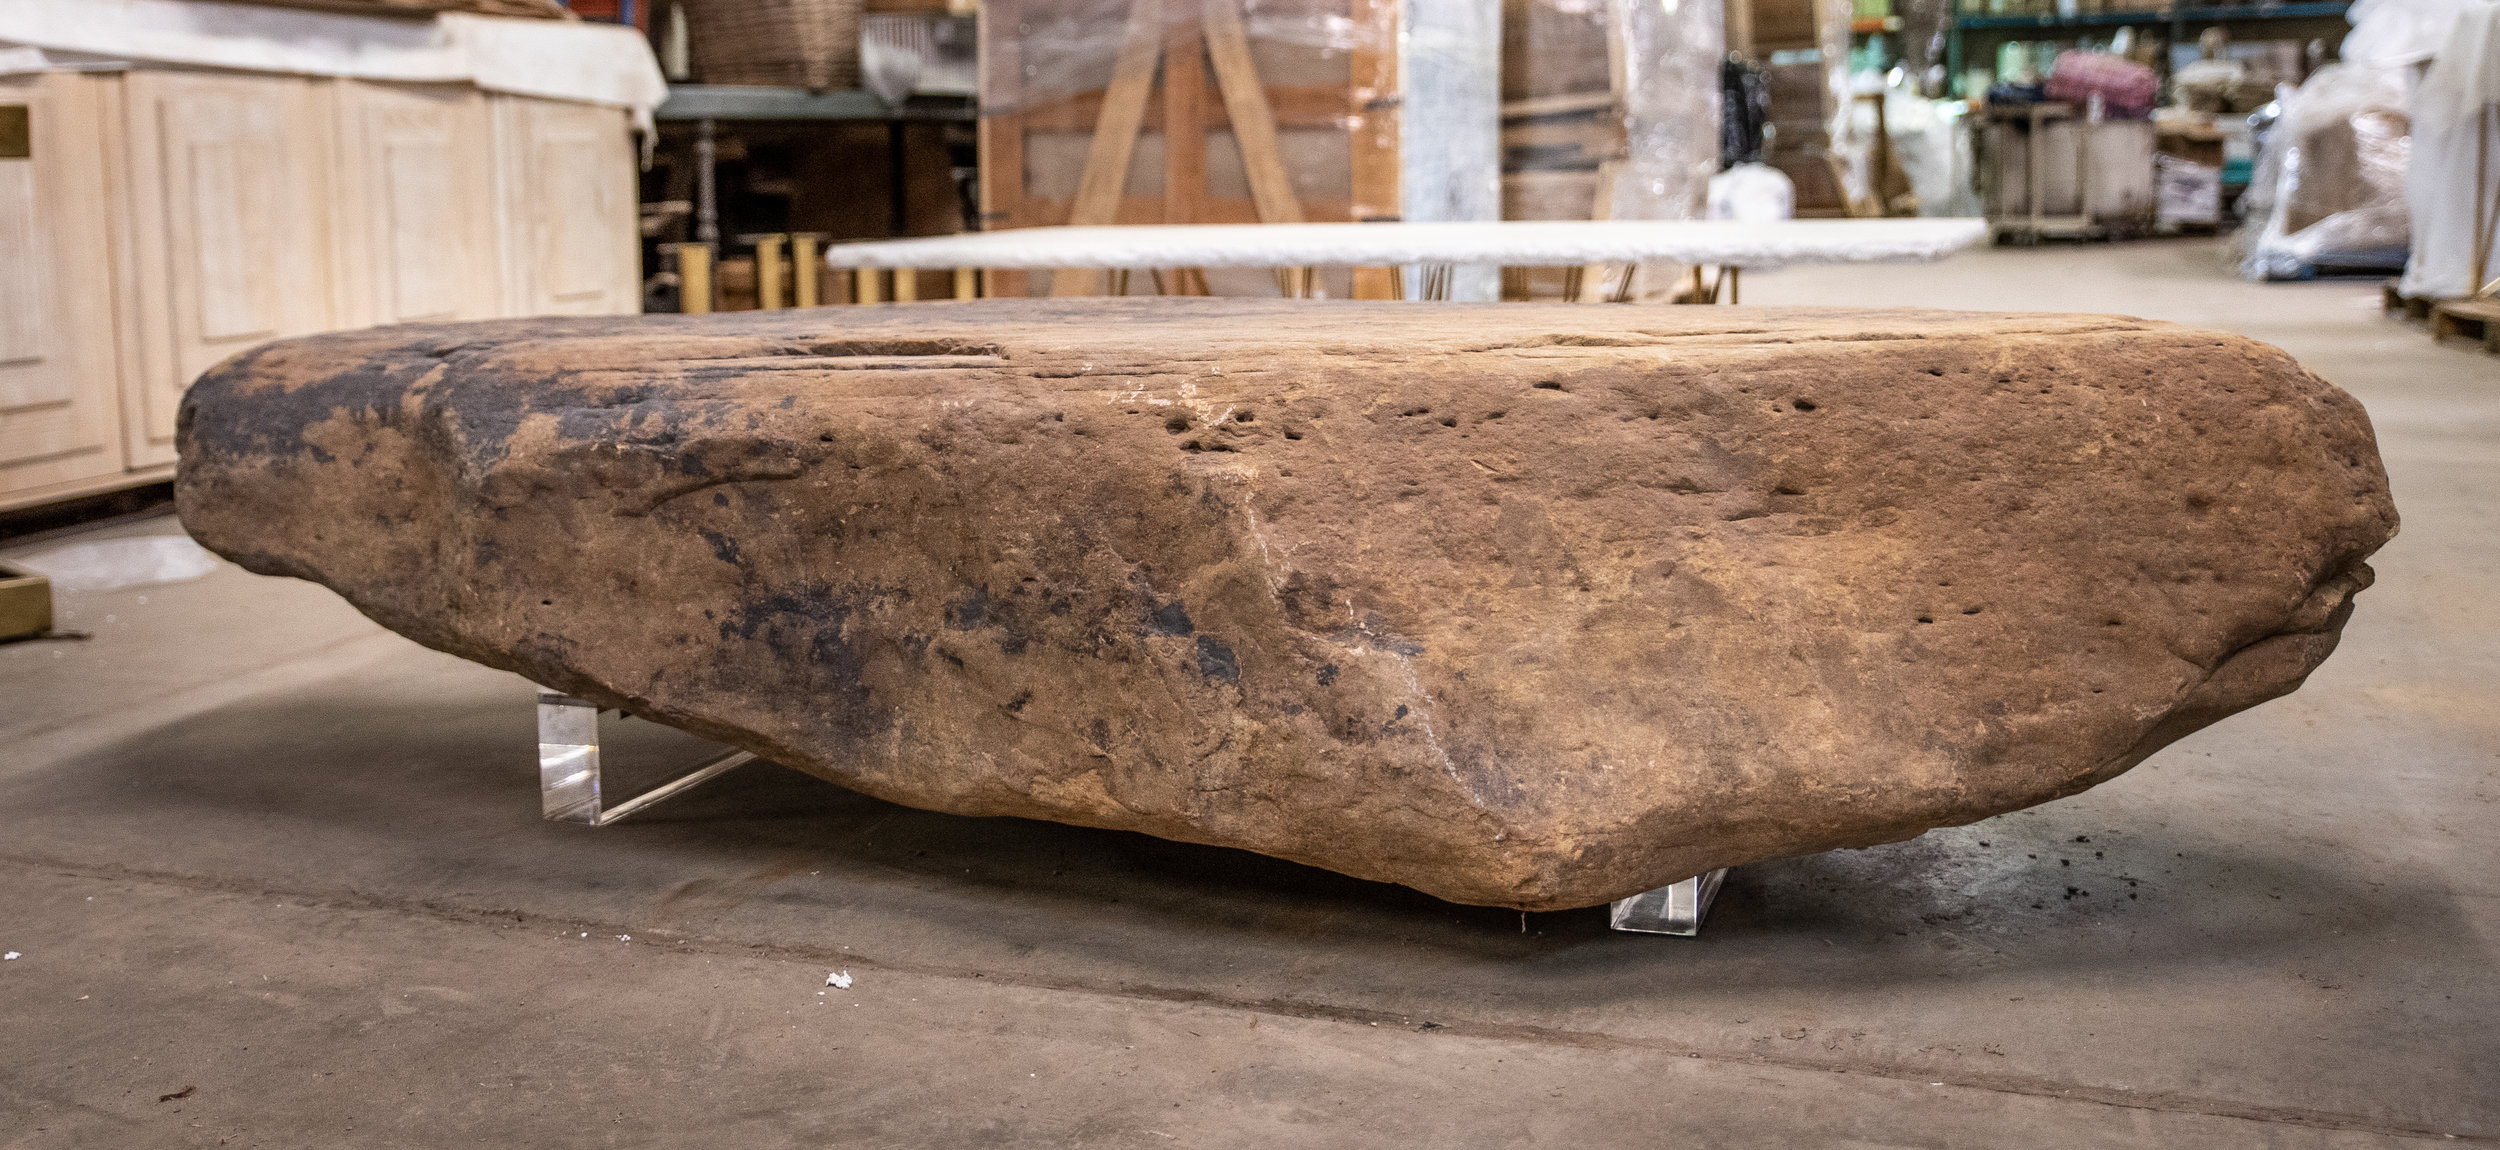 Boulder coffee table by the Paul Michael Company. Boulder harvested from Northwest Arkansas. Photo by Ashlee Nobel